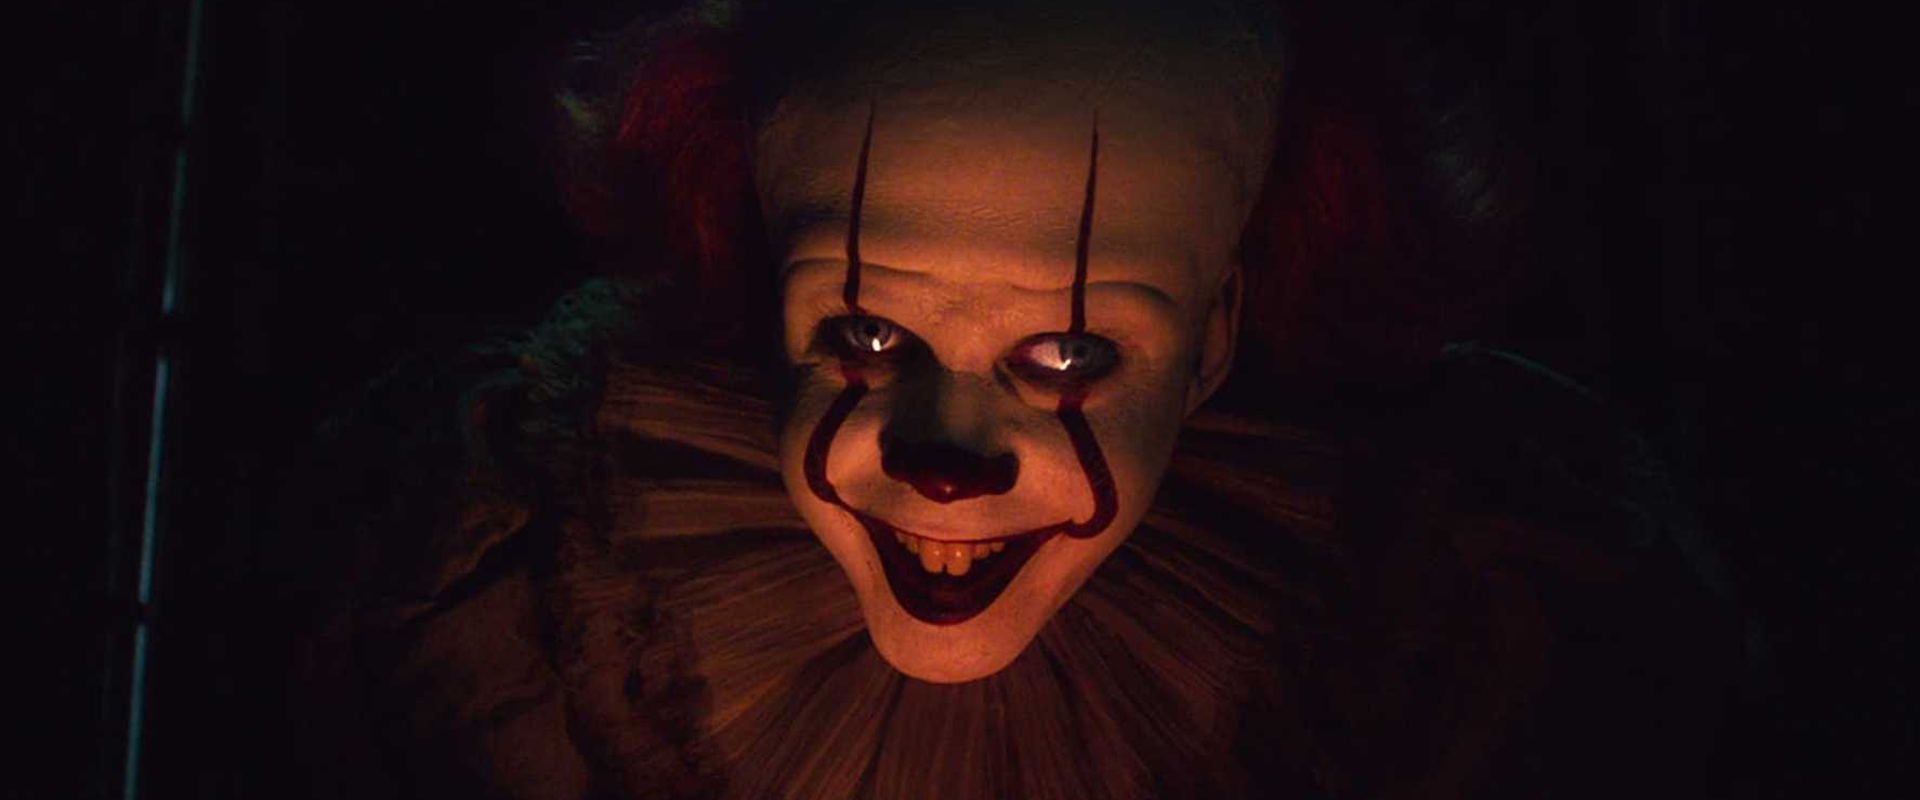 Pennywise Floats Back to Derry - IT Chapter Two Review